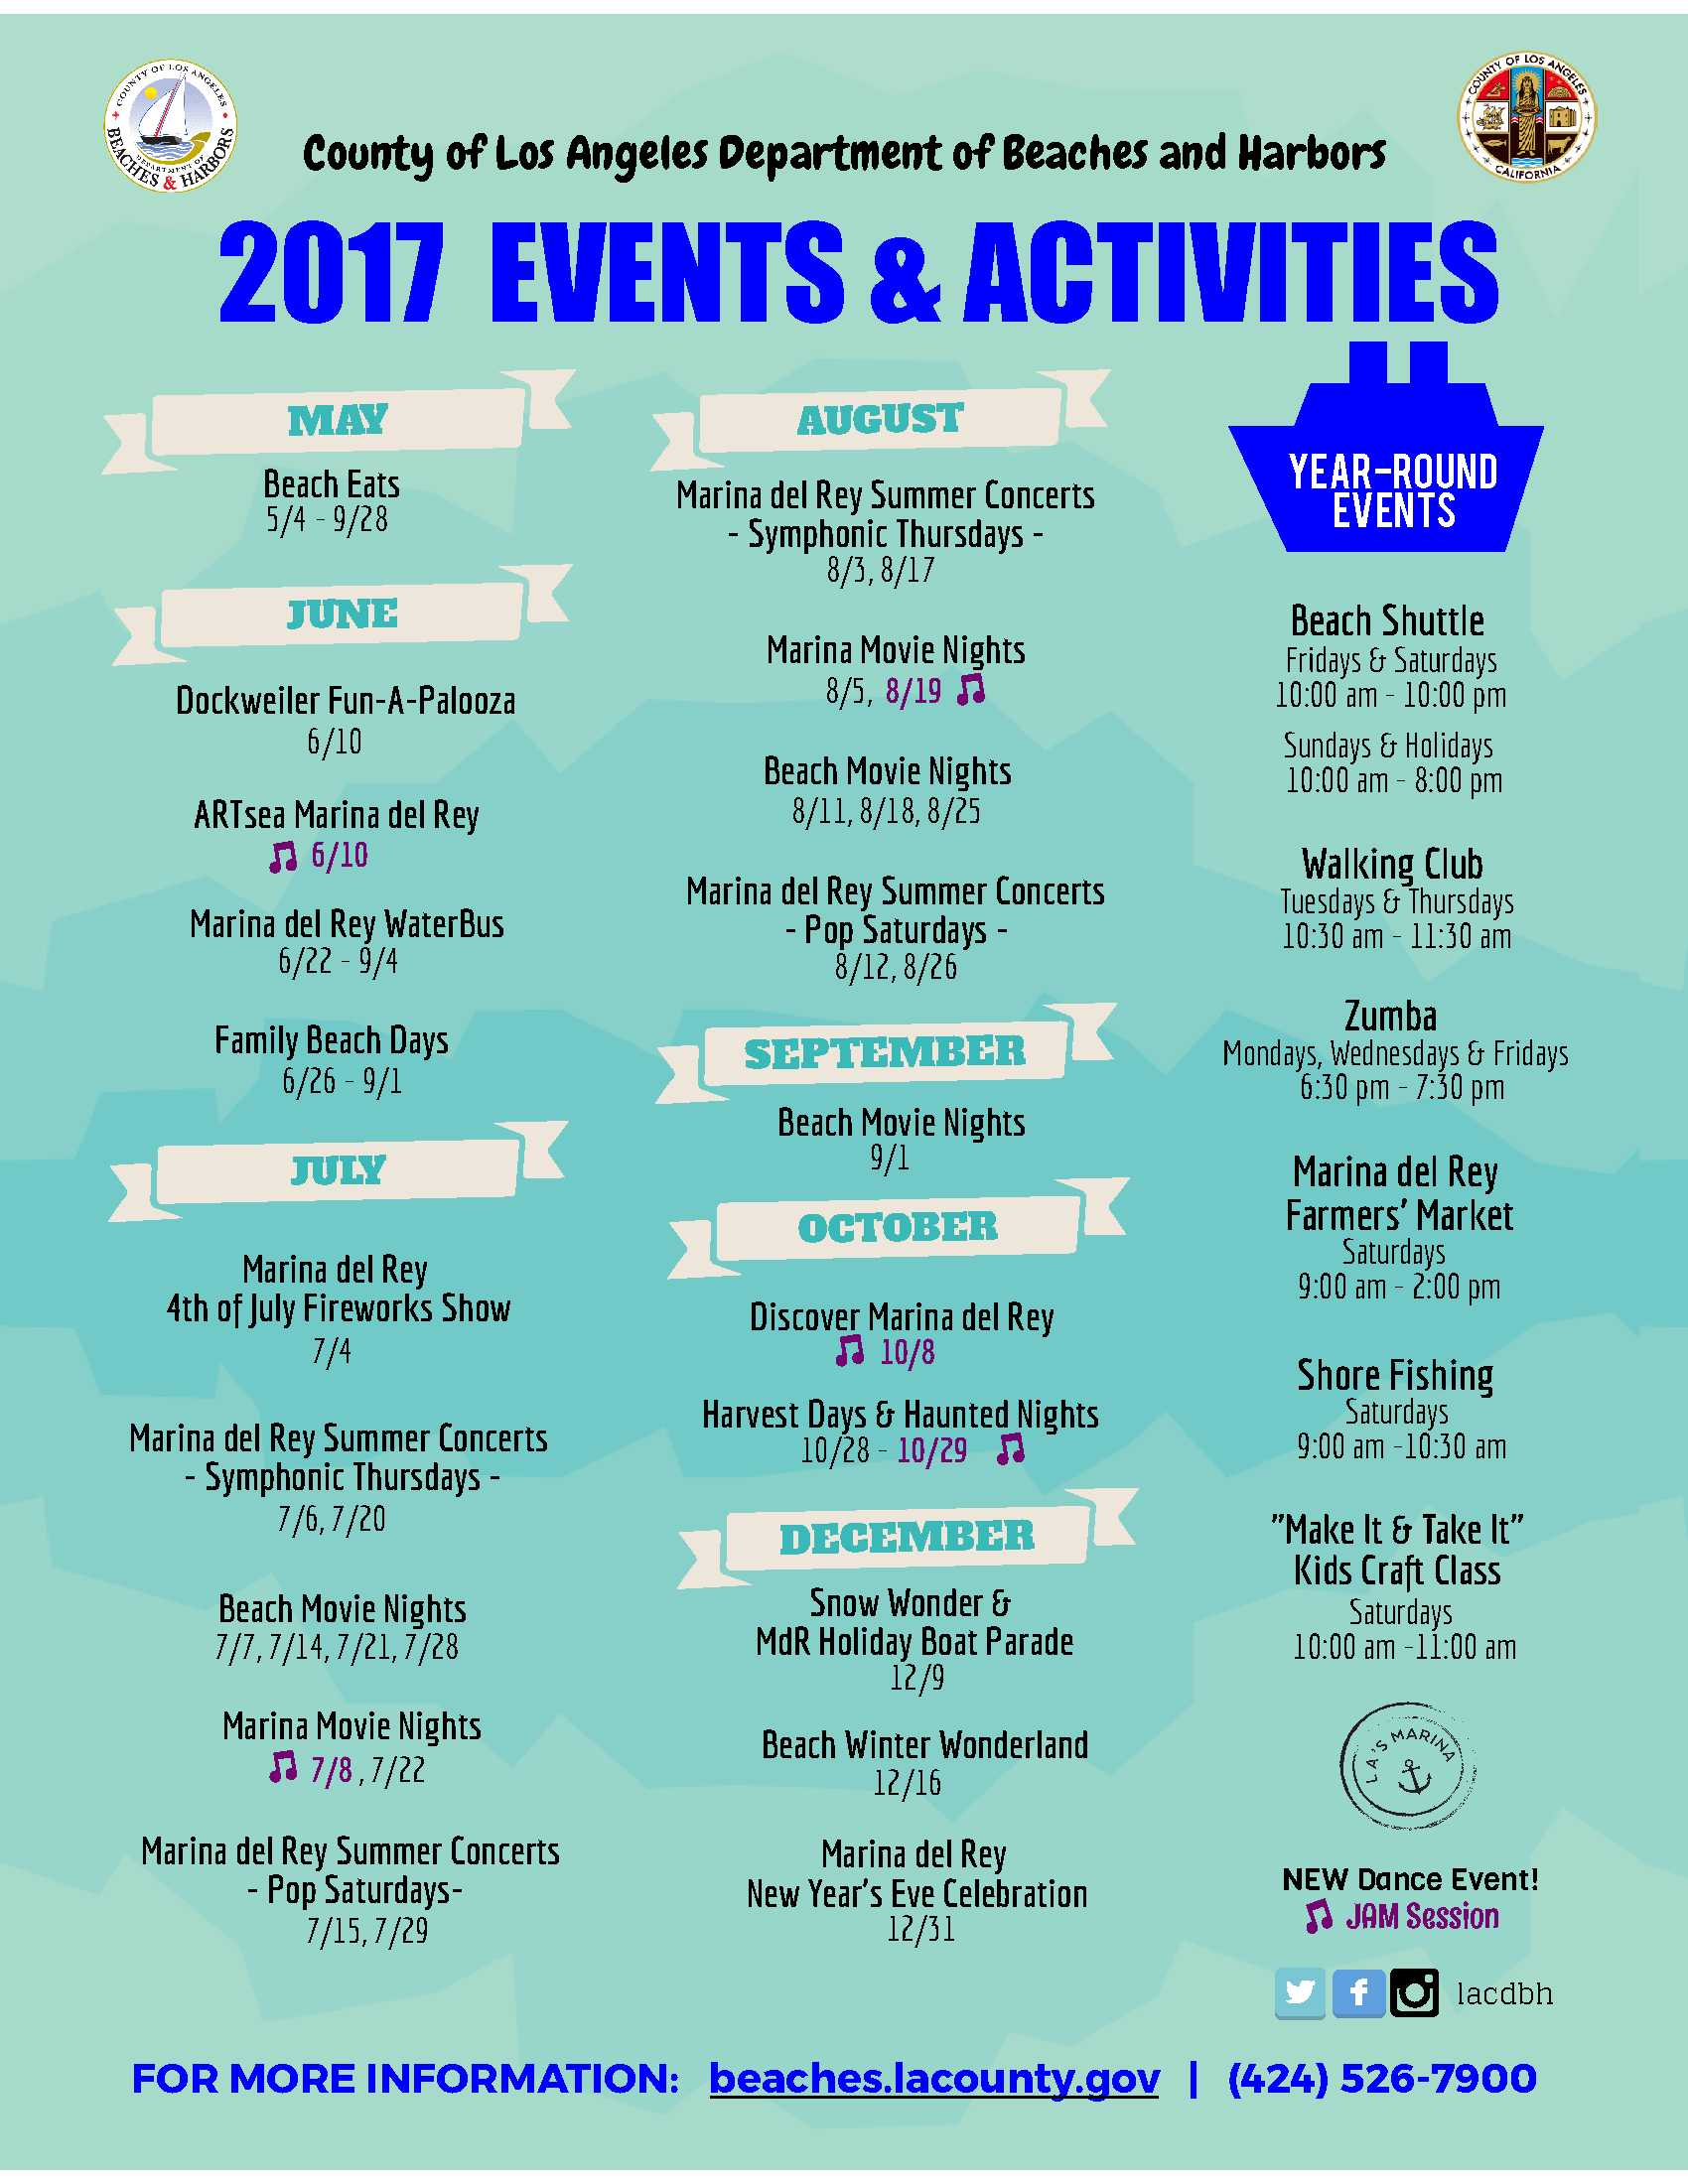 2017 DBH EVENTS AND ACTIVITIES